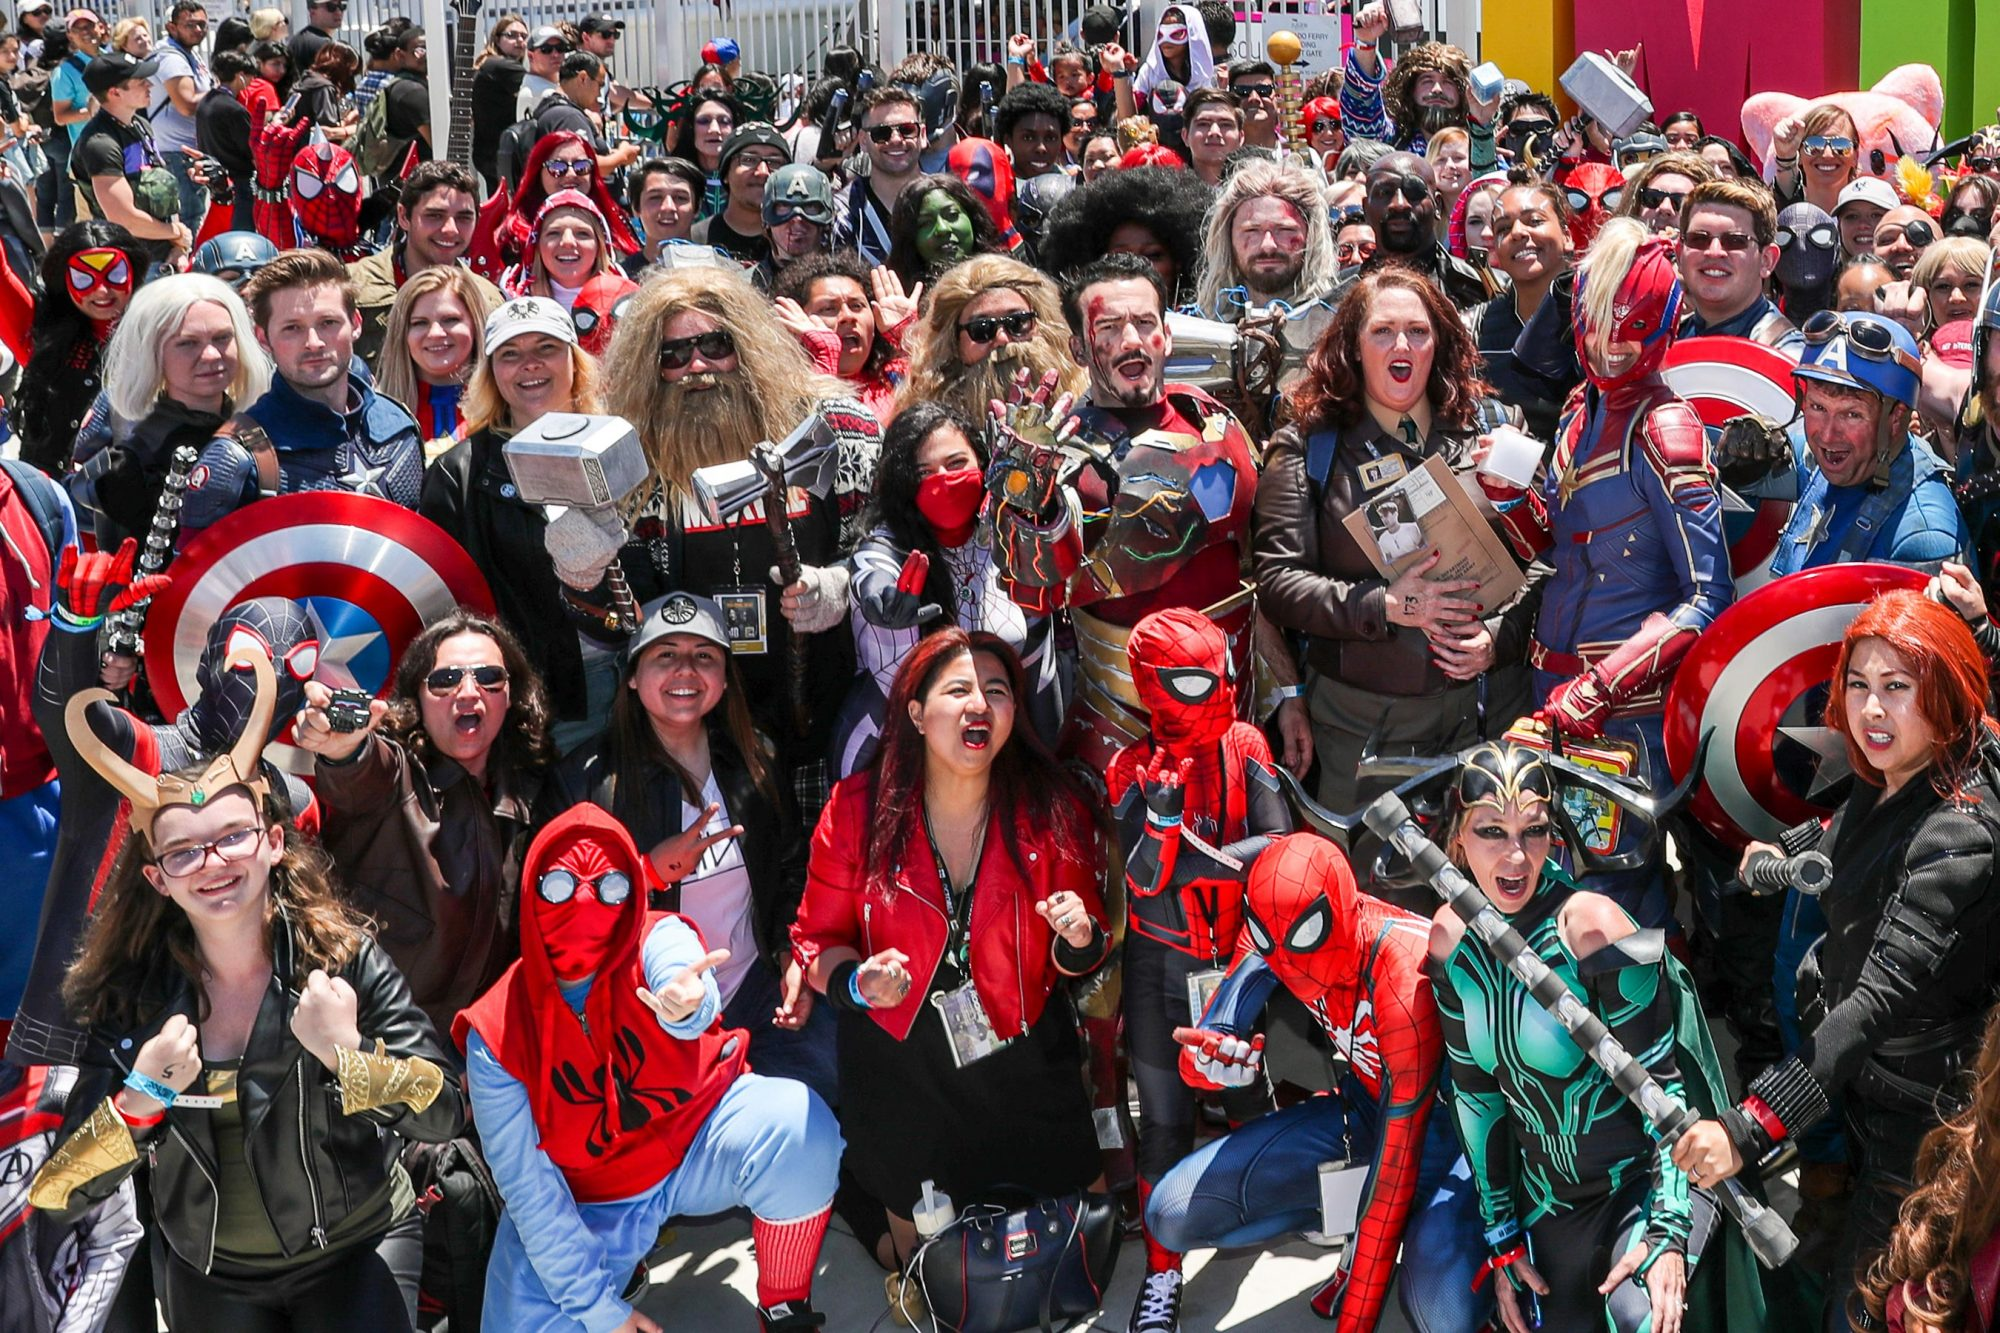 Avengers: Endgame Cosplay And Fan Meet-Up At #IMDboat